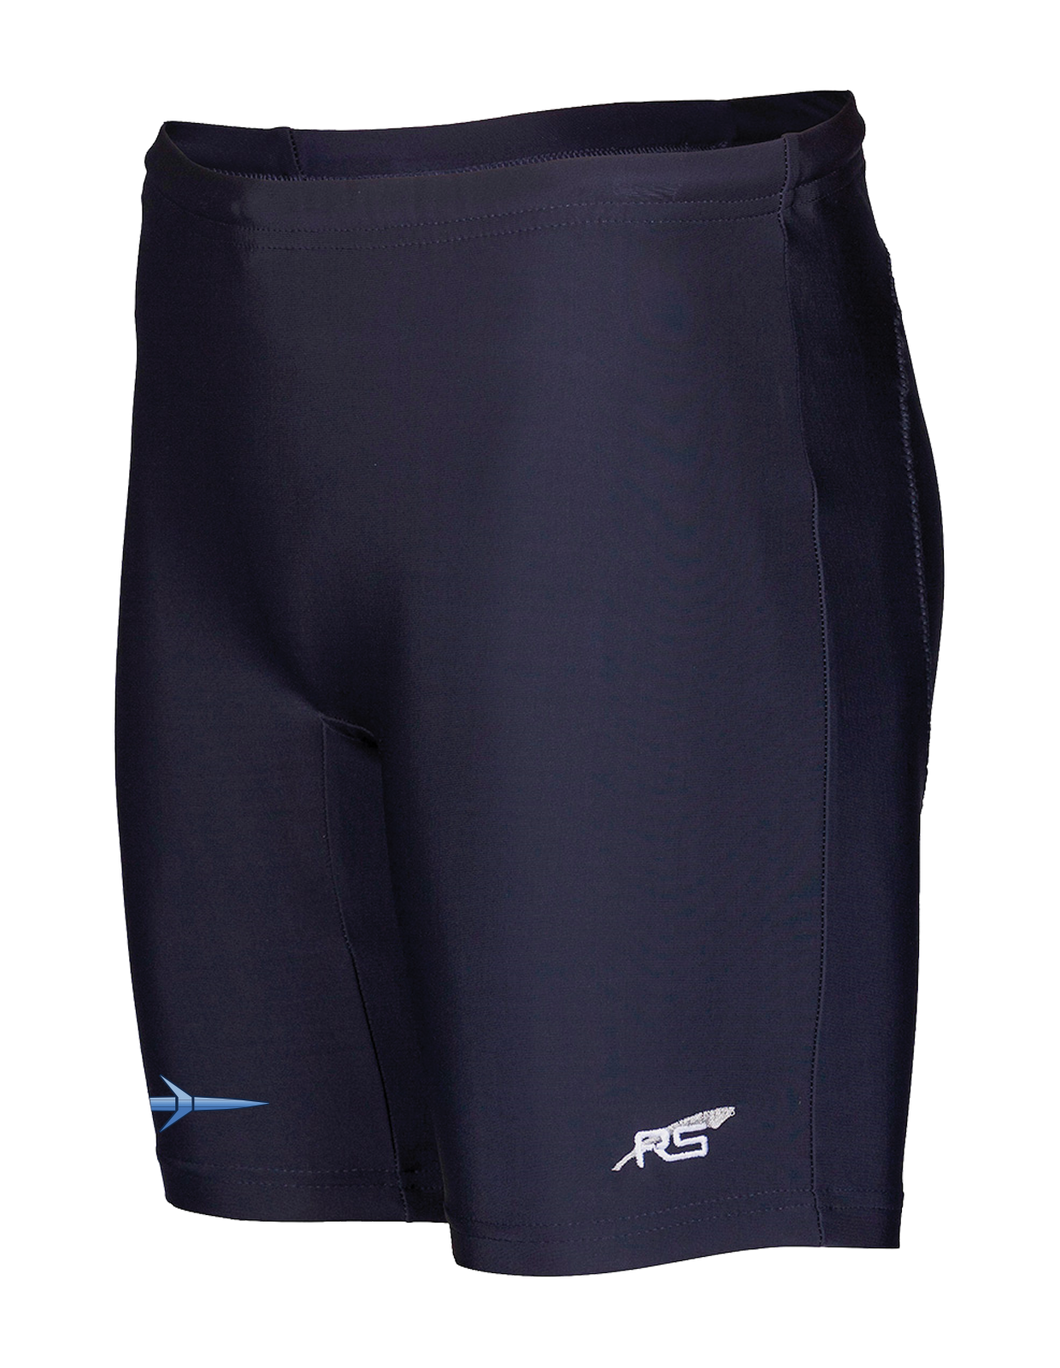 Fluidesign Ergo Short